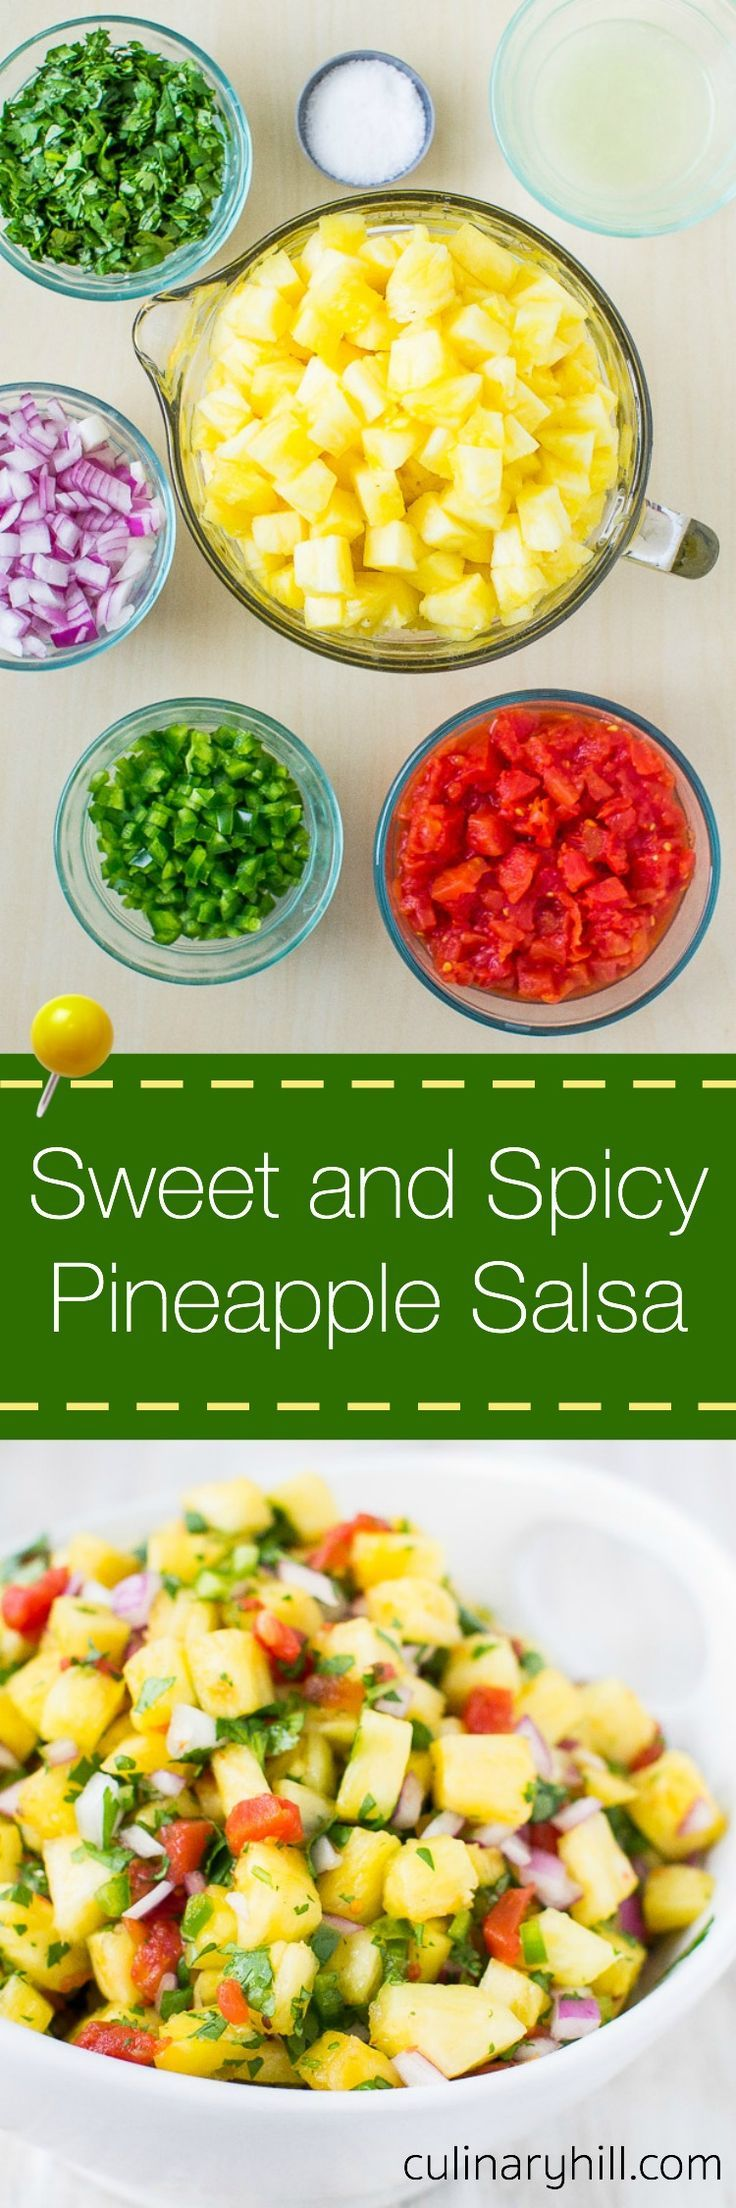 Sweet and Spicy Pineapple Salsa Recipe PINS I LOVE